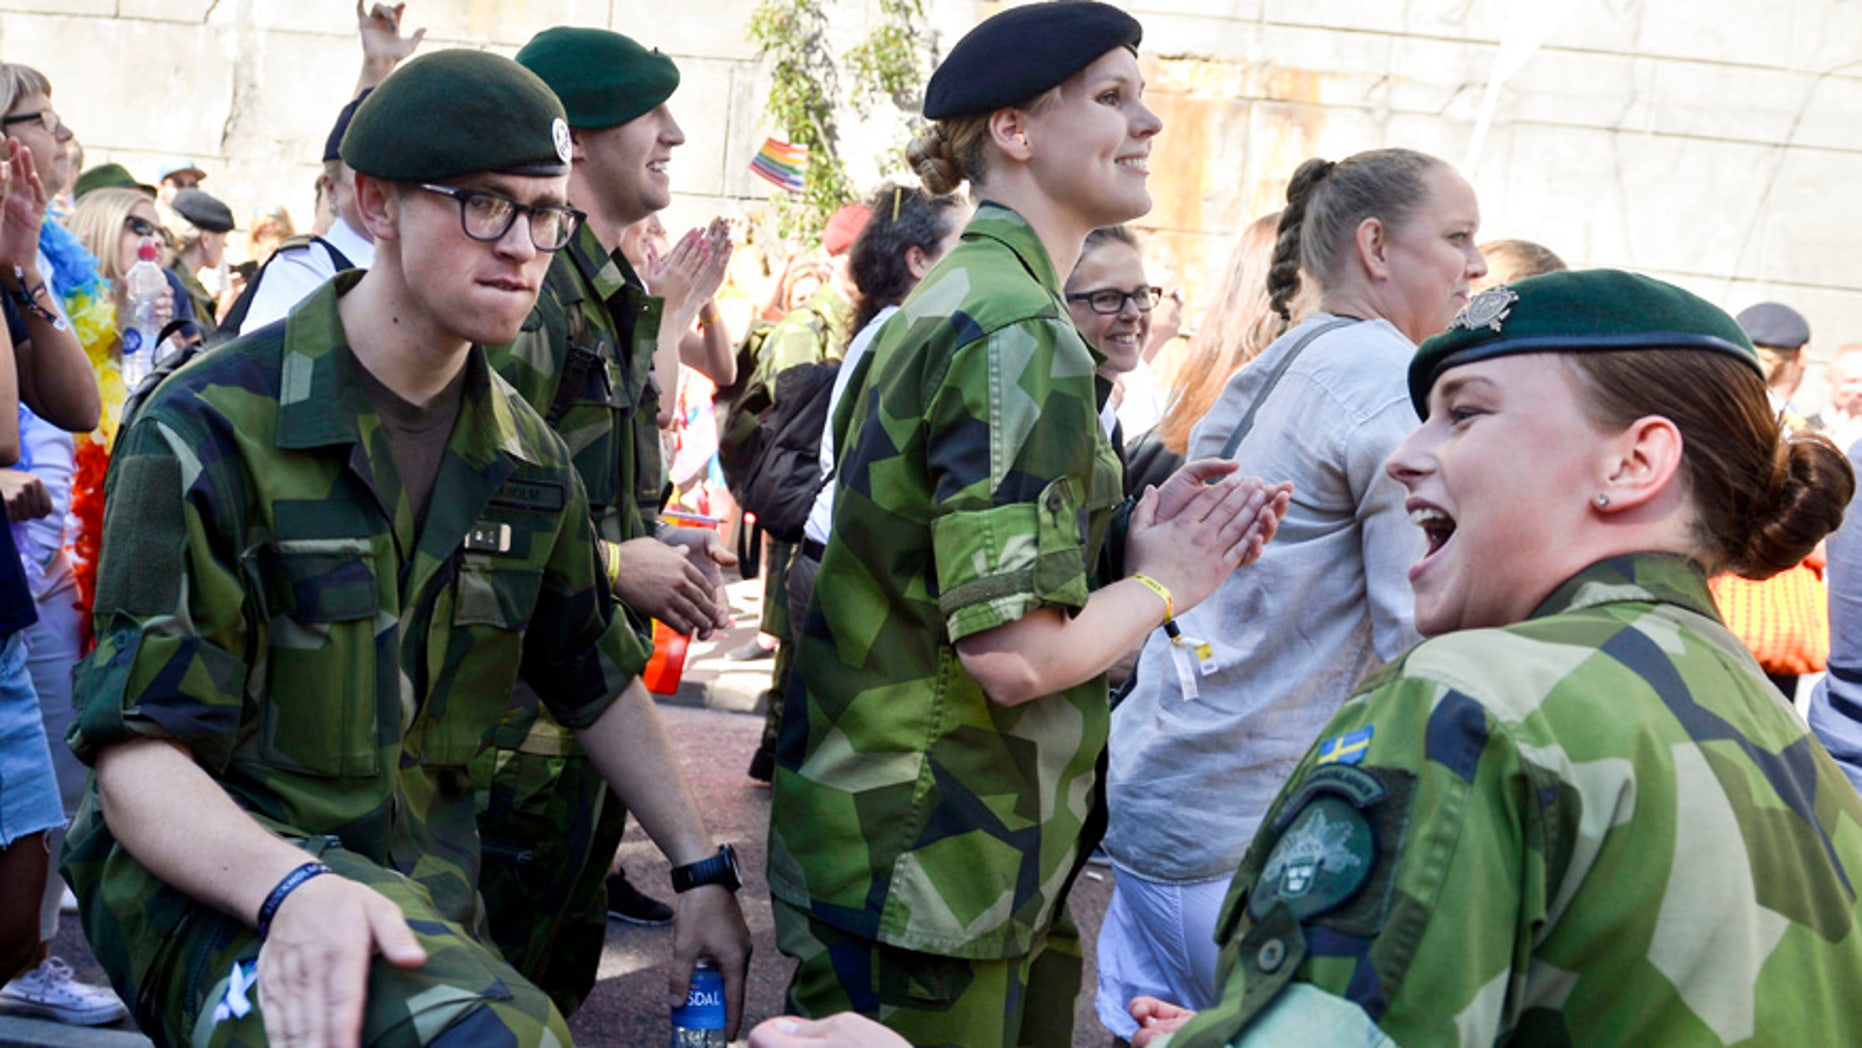 FILE - This is a Saturday Aug. 1, 2015  file photo of Swedish Army personnel as they take part in the annual gay Pride Parade in Stockholm.  Sweden's left-leaning government is reintroducing a military draft for both men and women because of what Defense Minister Peter Hultqvist calls a deteriorating security environment in Europe and around Sweden. T ?(Vilhelm Stokstad/TT , File via AP)